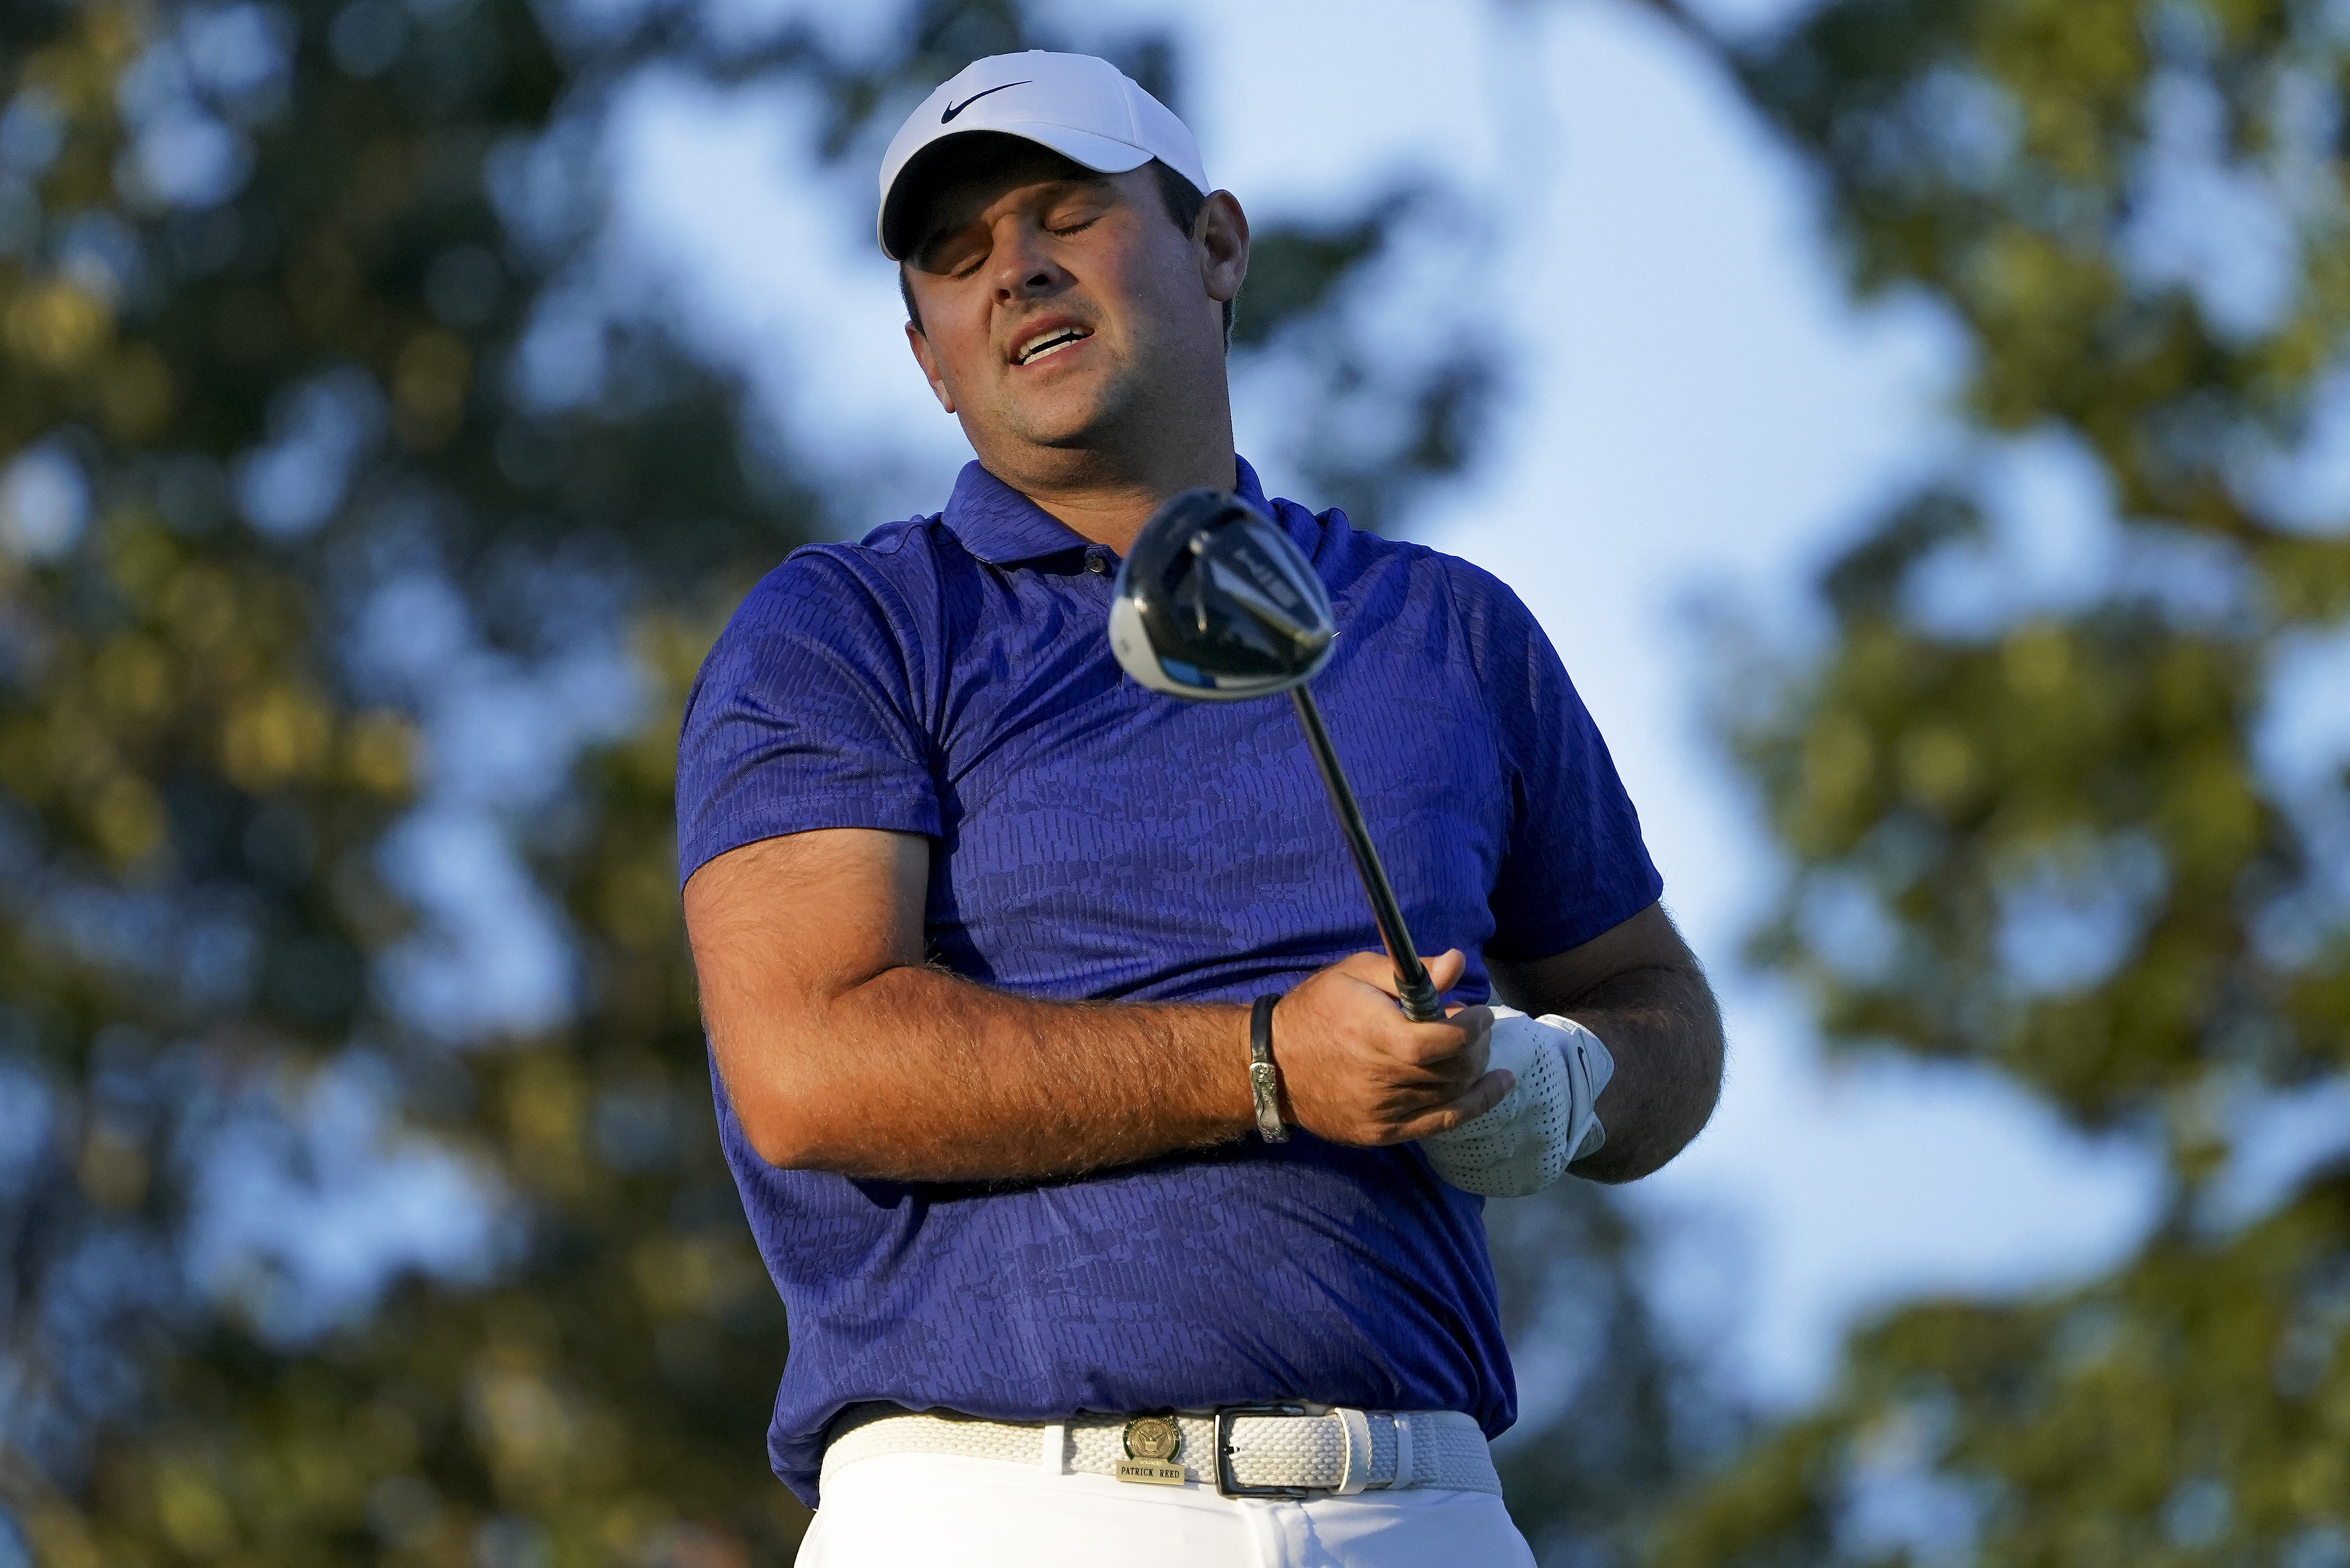 Patrick Reed, of the United States, reacts after playing his shot from the 17th tee during the third round of the US Open Golf Championship, Saturday, Sept. 19, 2020, in Mamaroneck, N.Y. (AP Photo/John Minchillo)